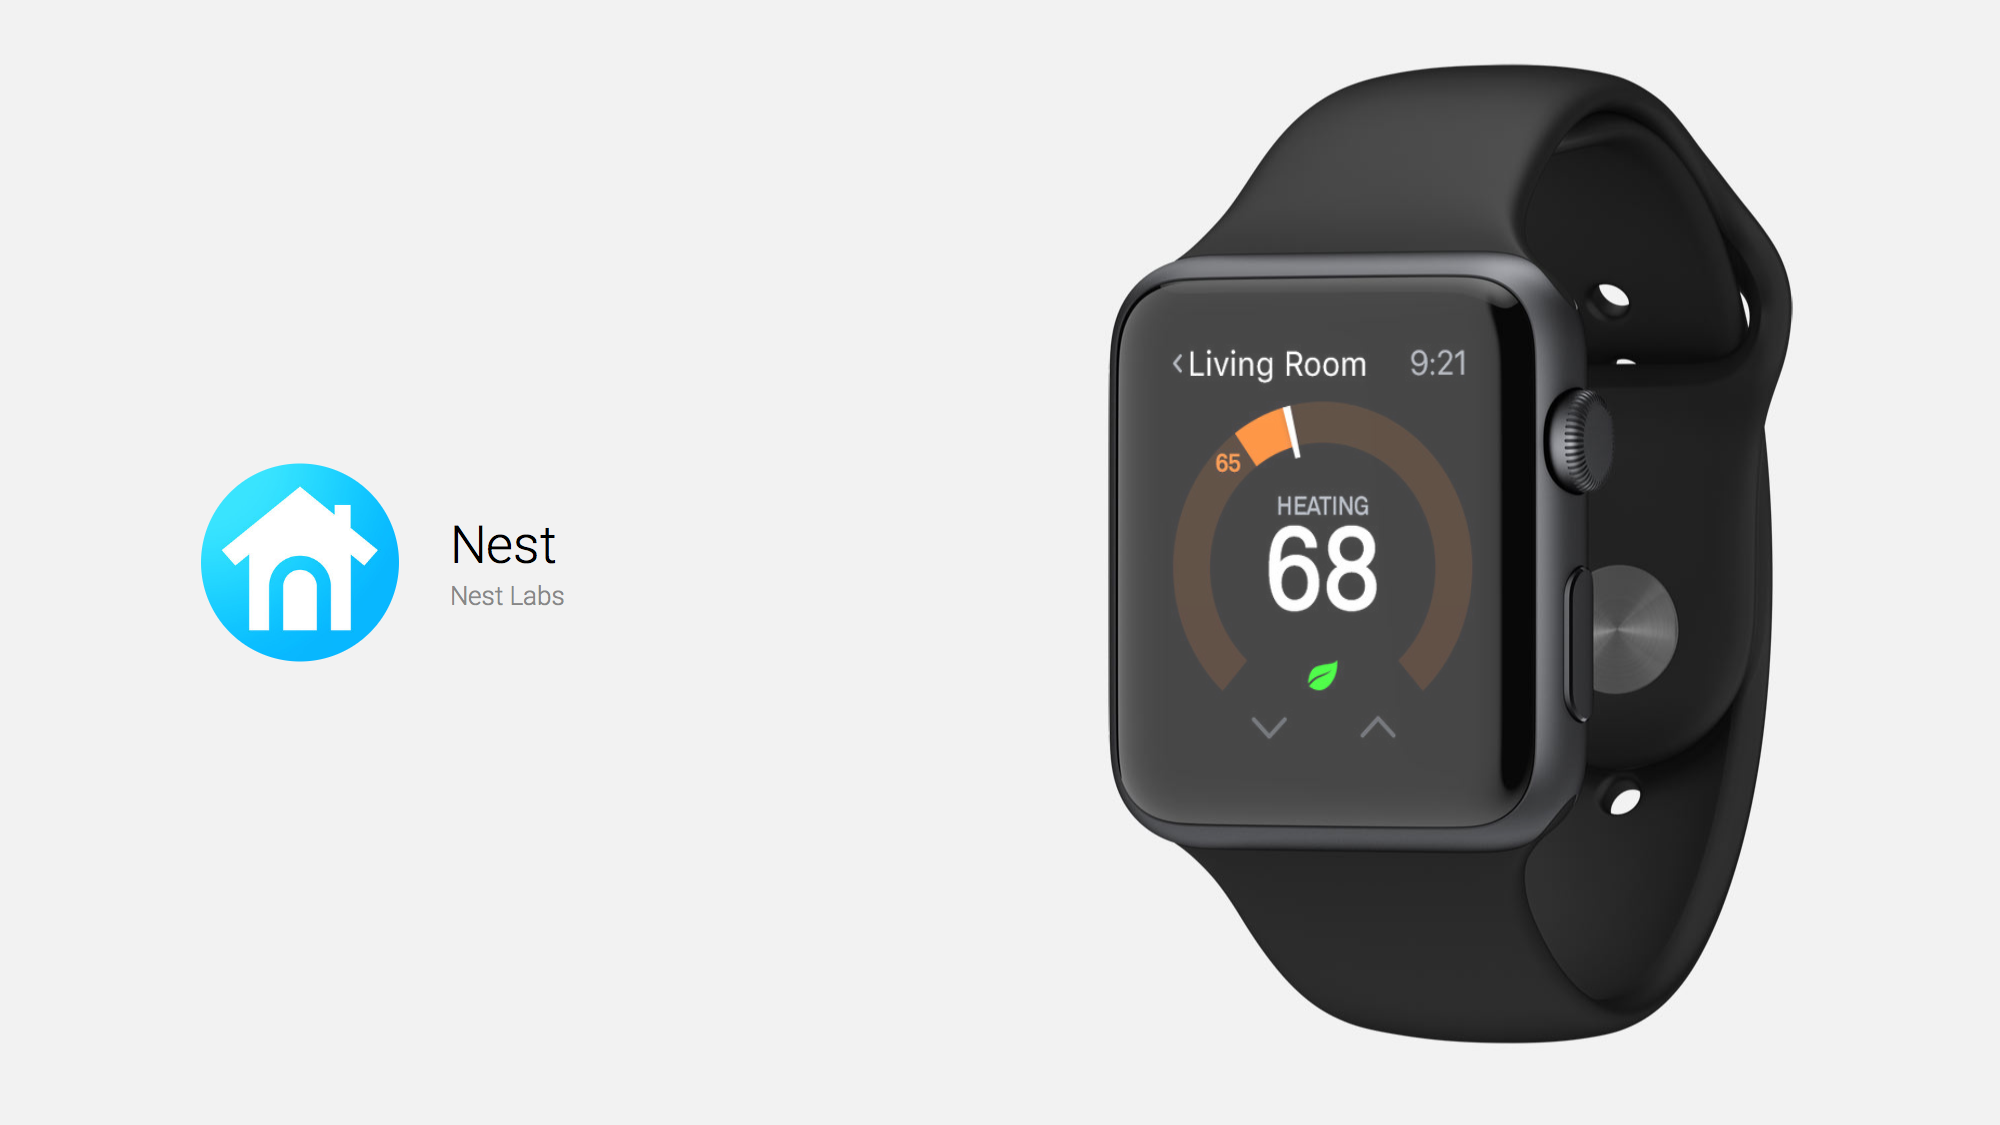 You Can Now Control Your Nest Thermostat From Your Apple Watch